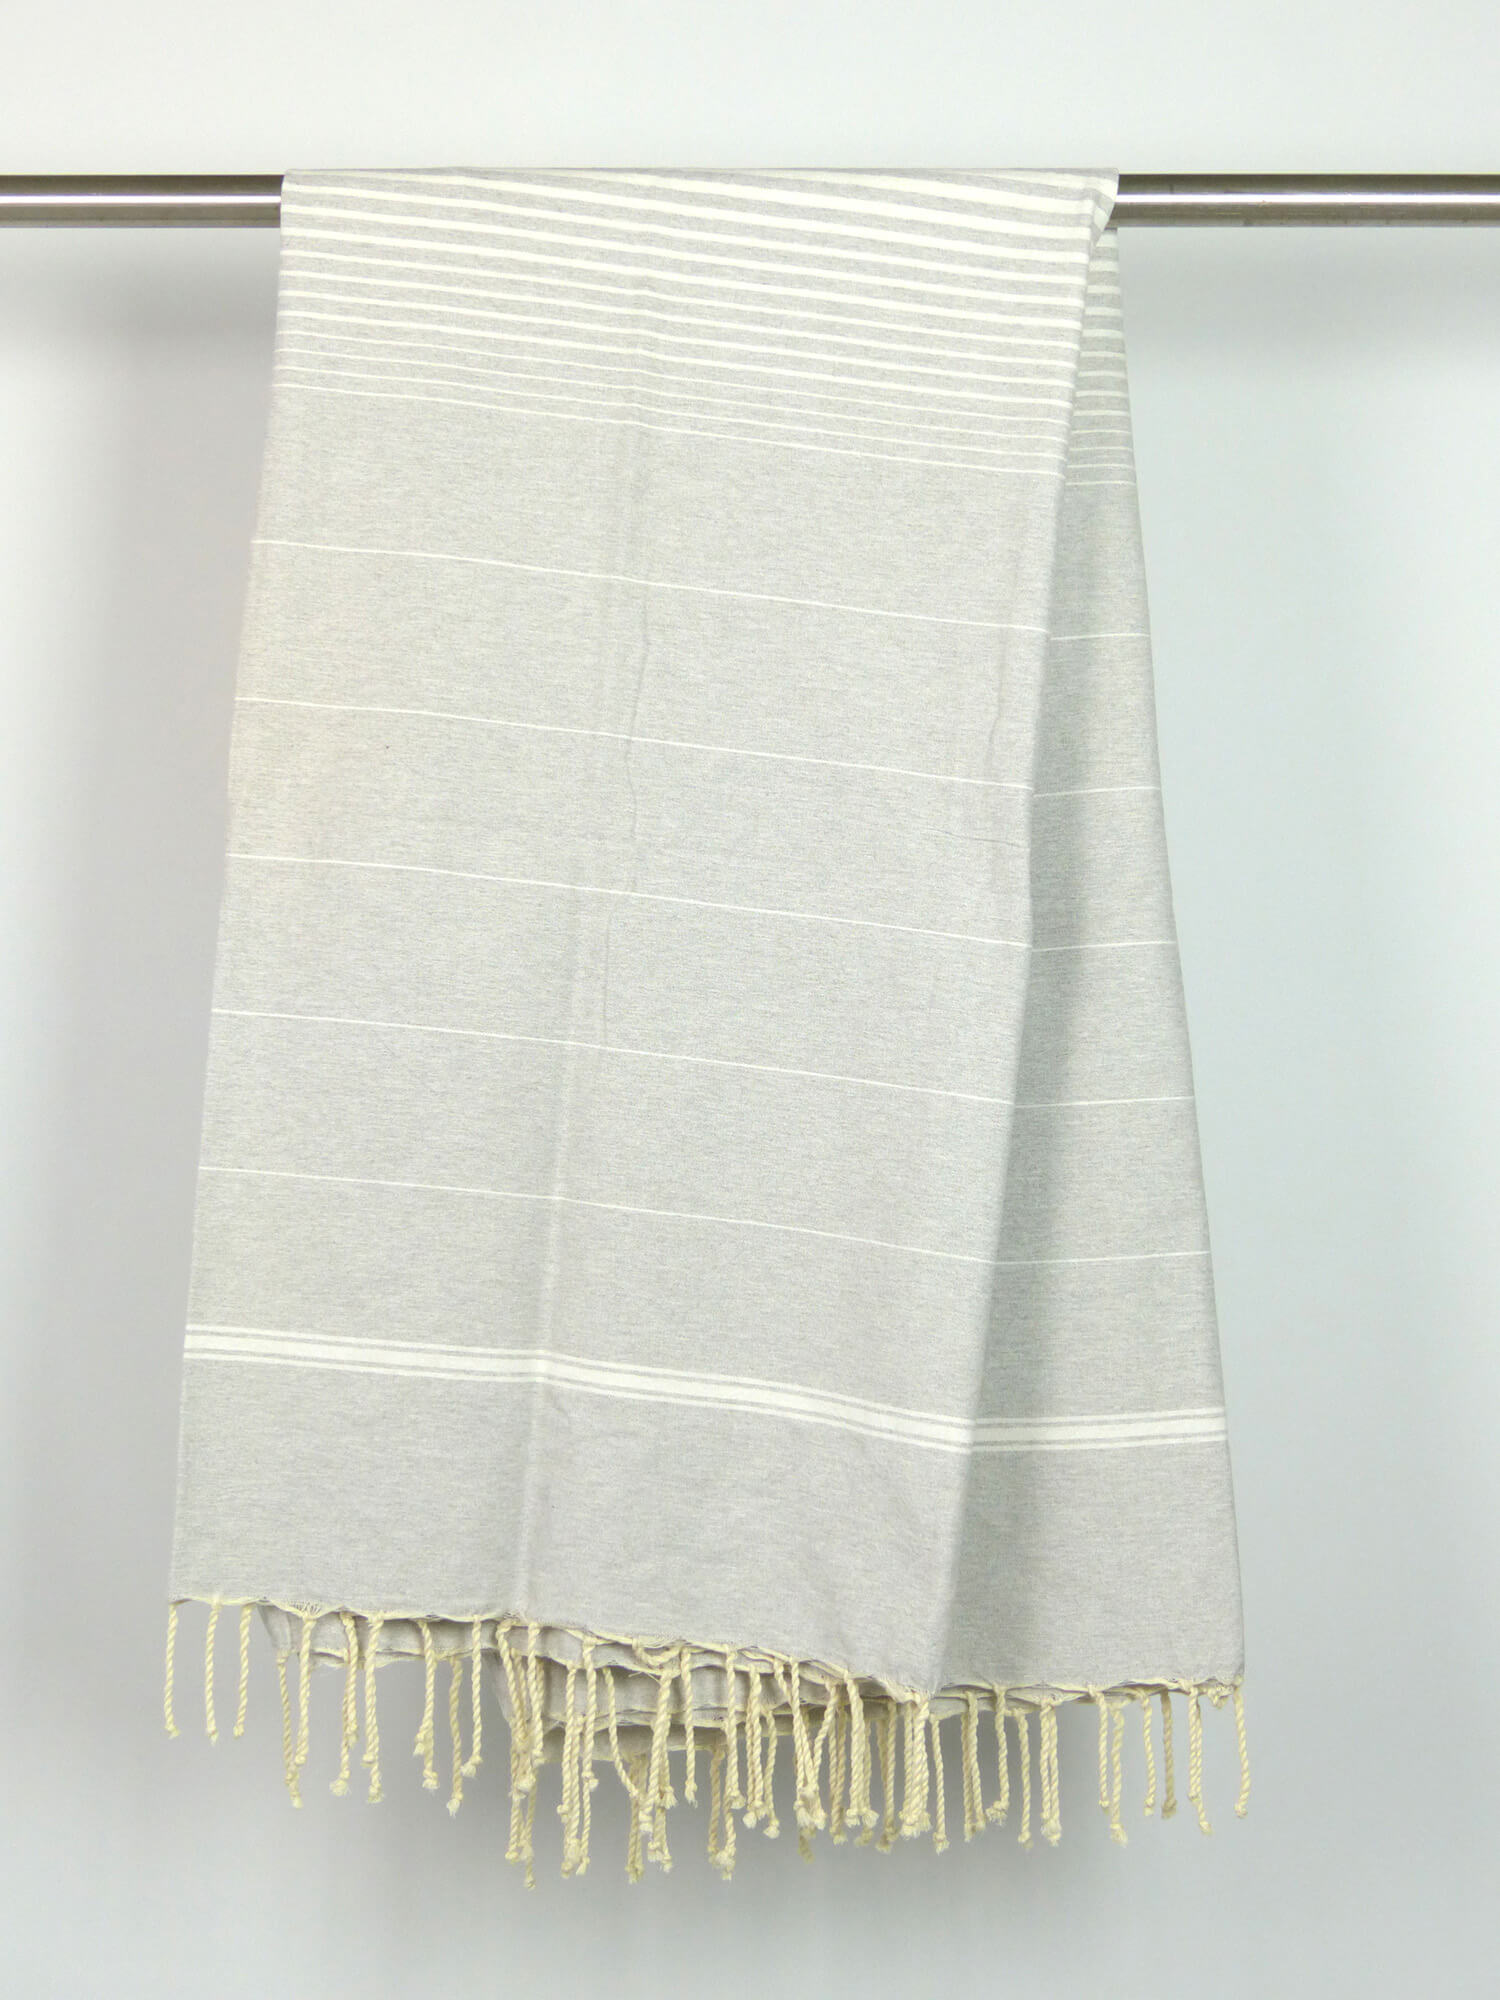 fouta tissage plat gris alu rayures blanches xl 2m x 2m per 20054. Black Bedroom Furniture Sets. Home Design Ideas